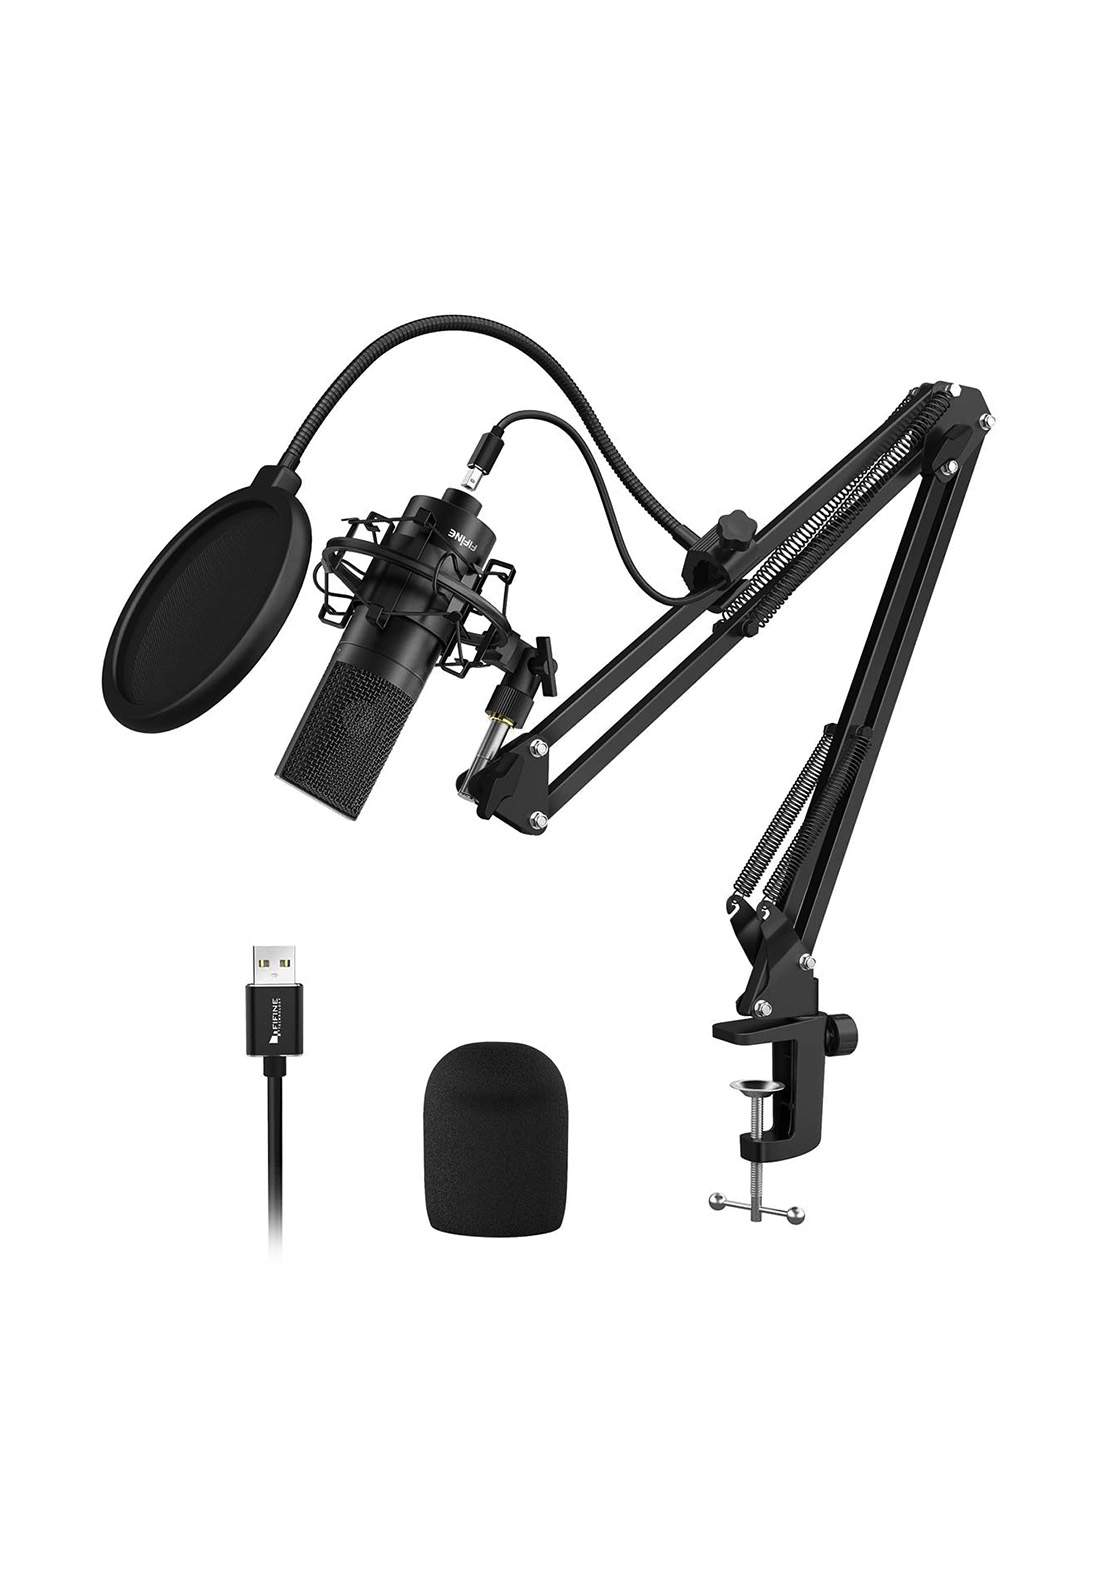 FIFINE  K780 Factory Professional Recording USB Microphone With Arm Stand - Black مايكرفون